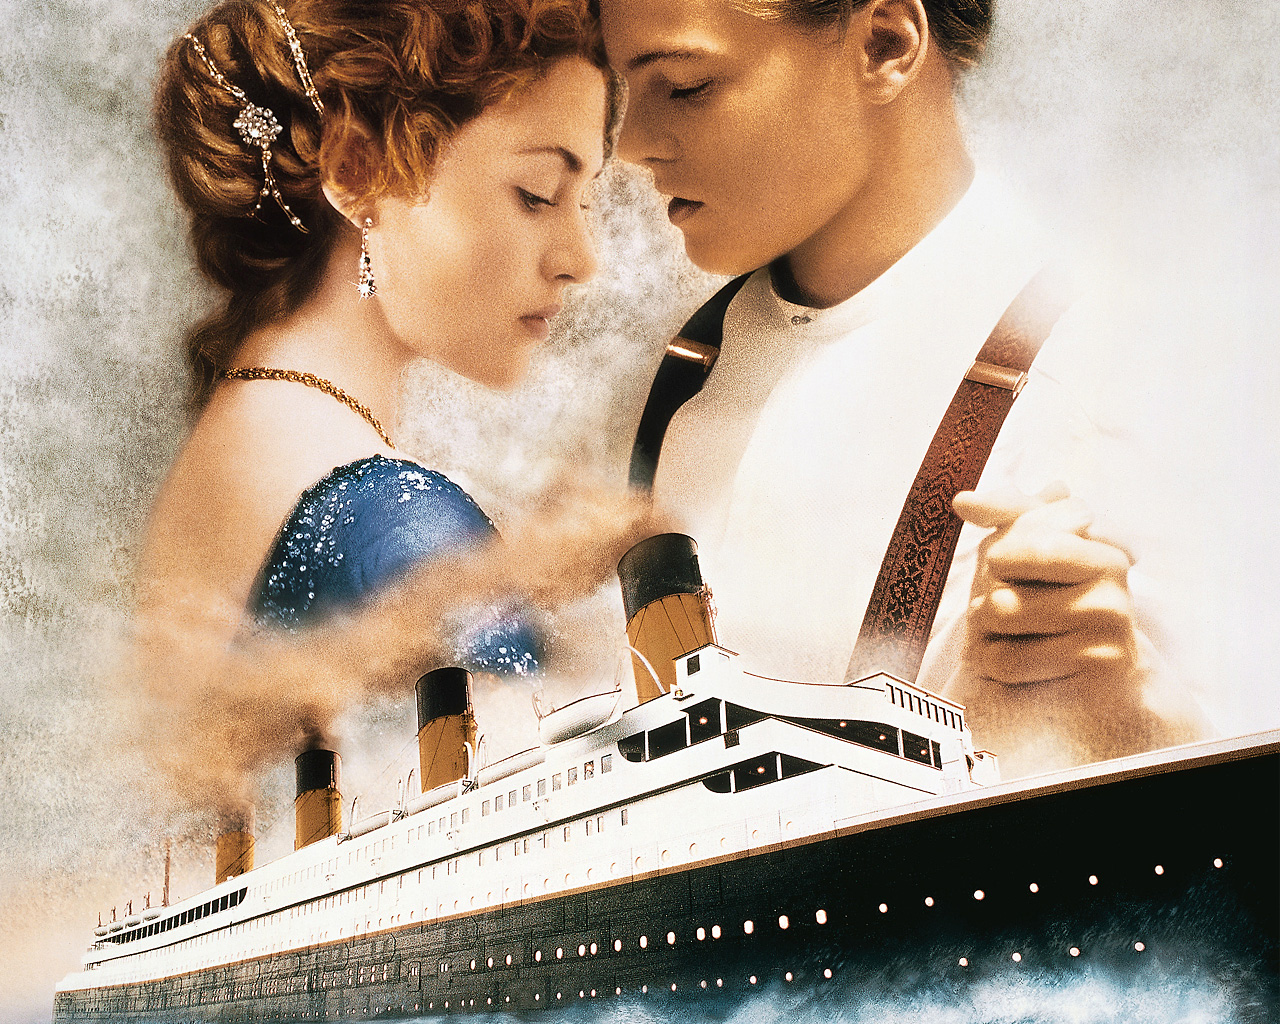 Kate Winslet In Titanic Movie Wallpapers Pictures 1280x1024